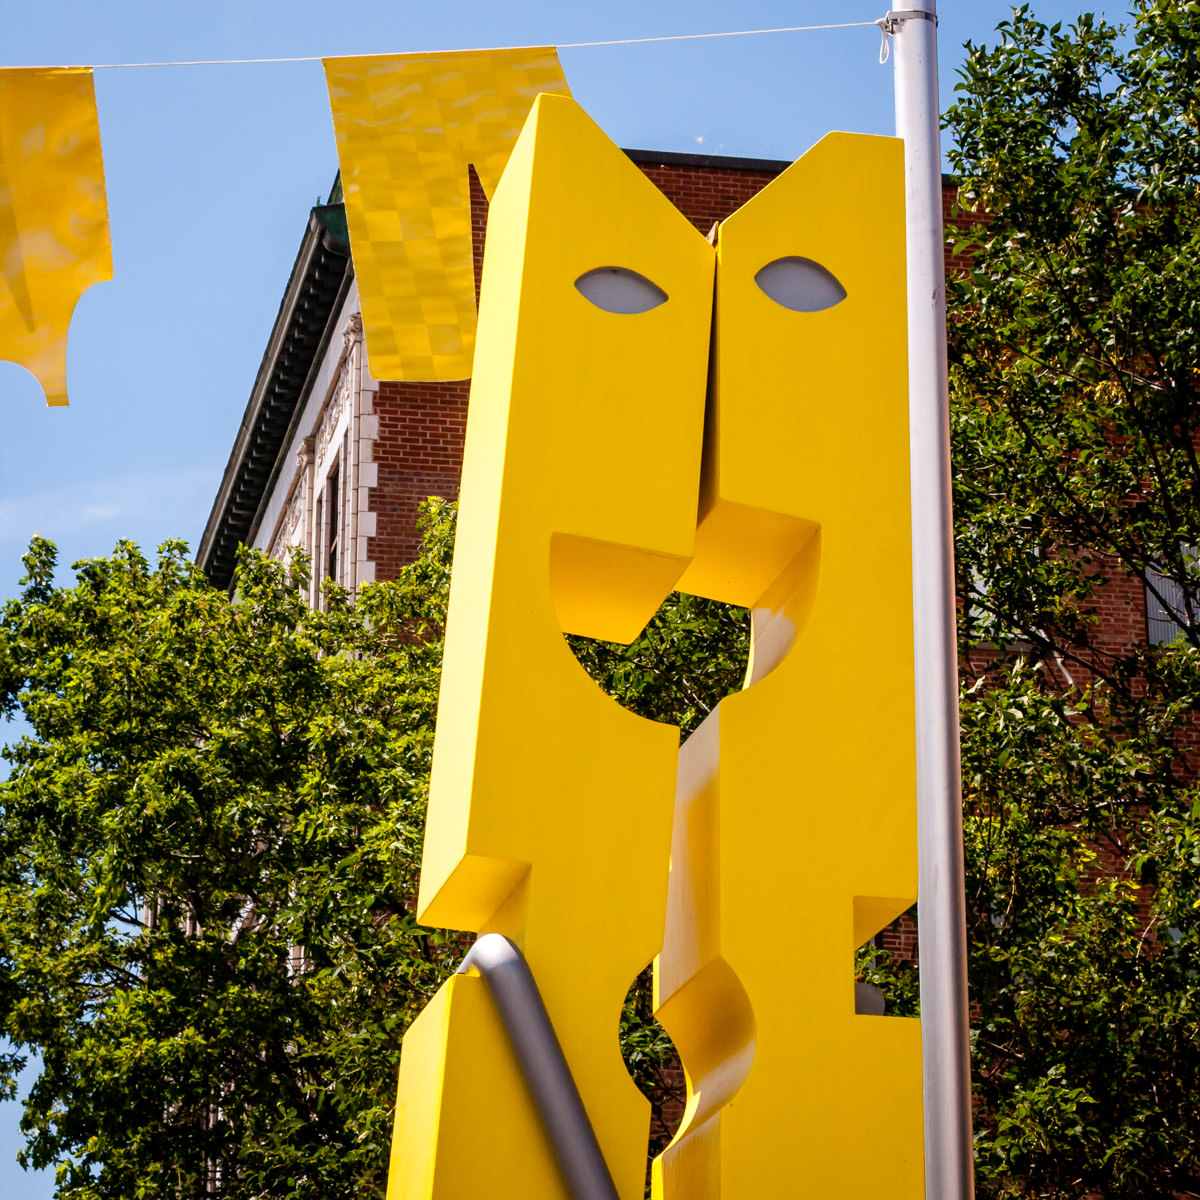 A sculpture on Rue Ste-Catherine in The Village, Montréal's Gay district.